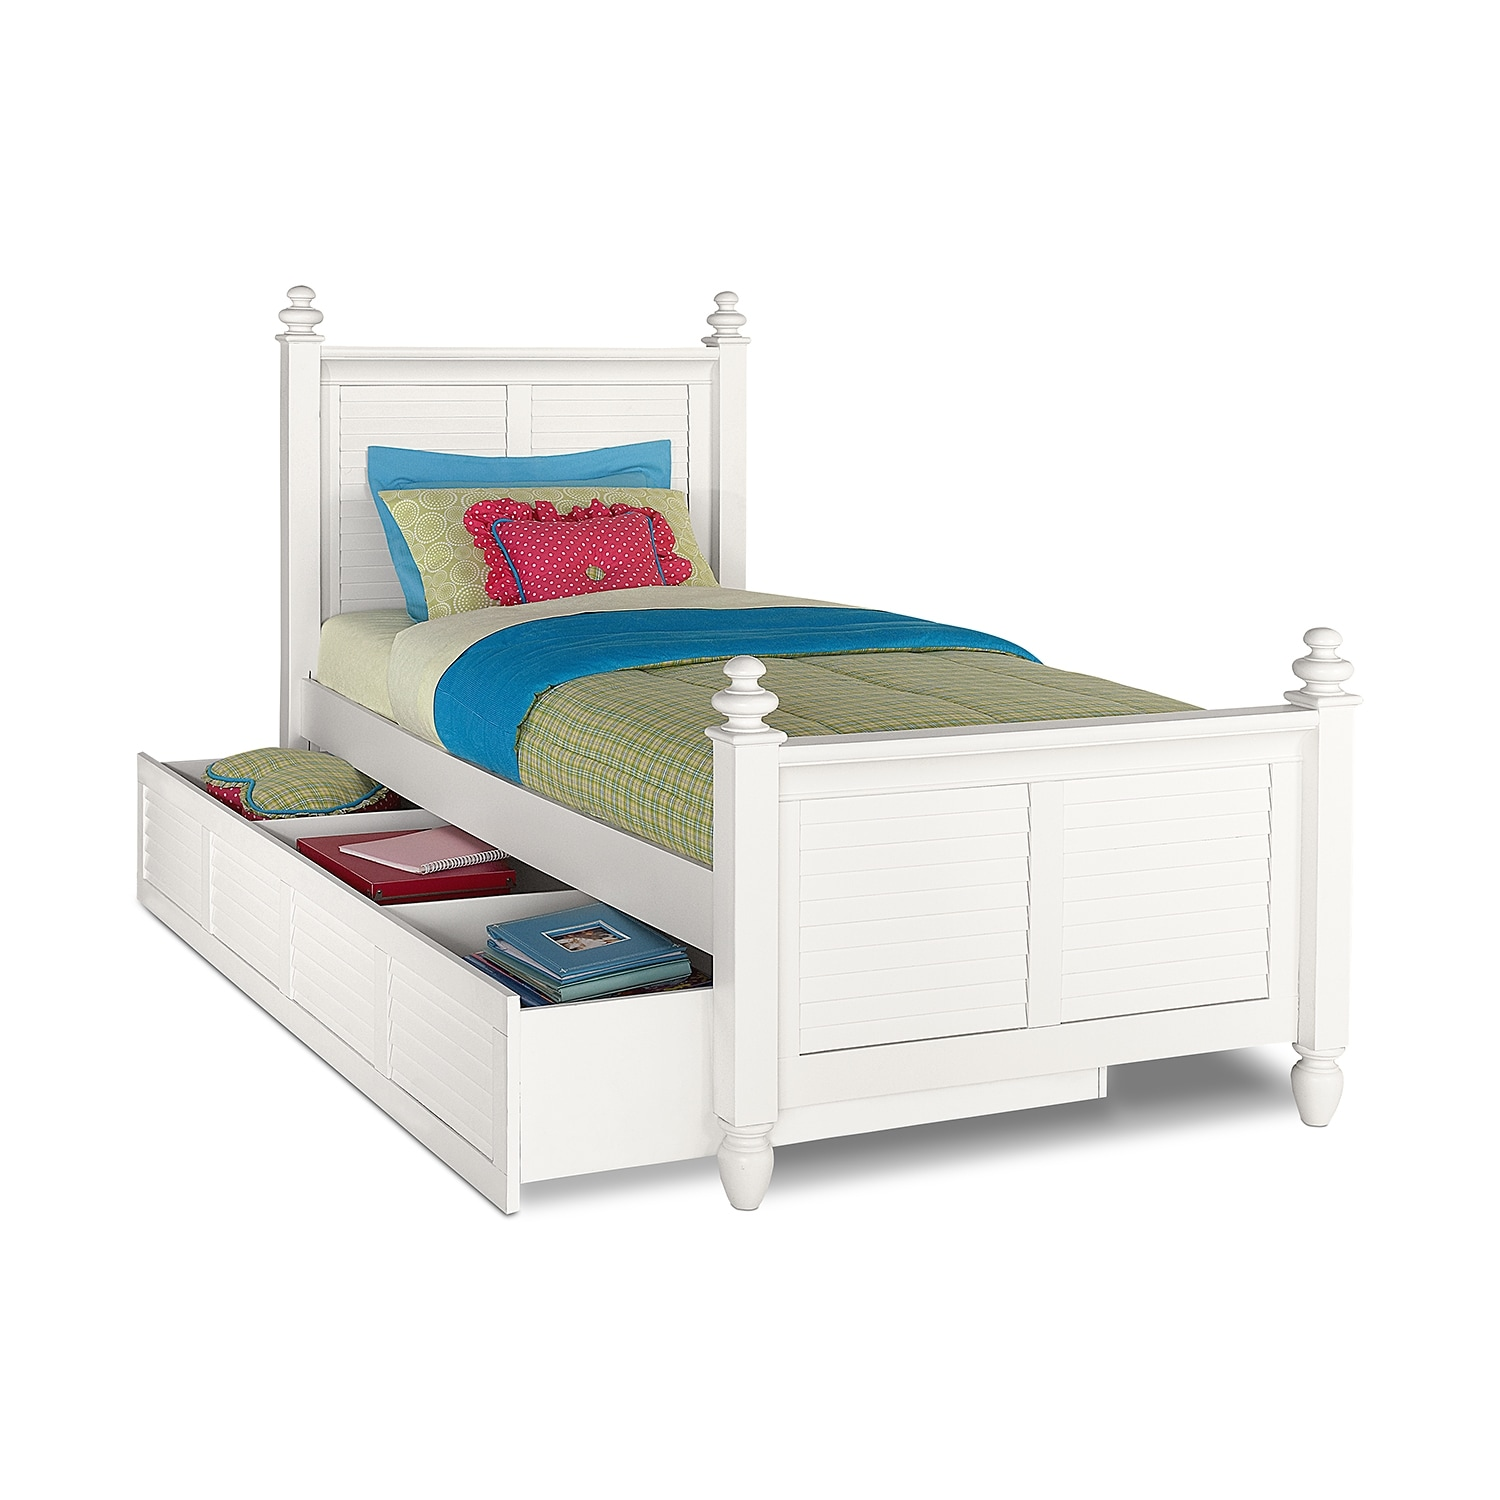 Seaside Twin Bed With Trundle White Value City Furniture